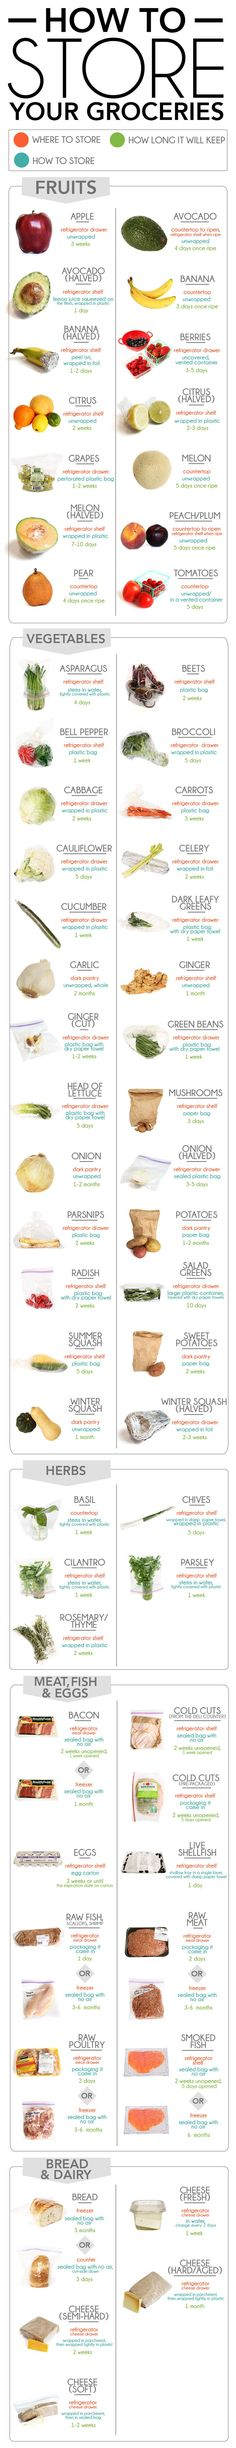 How to store your groceries guide